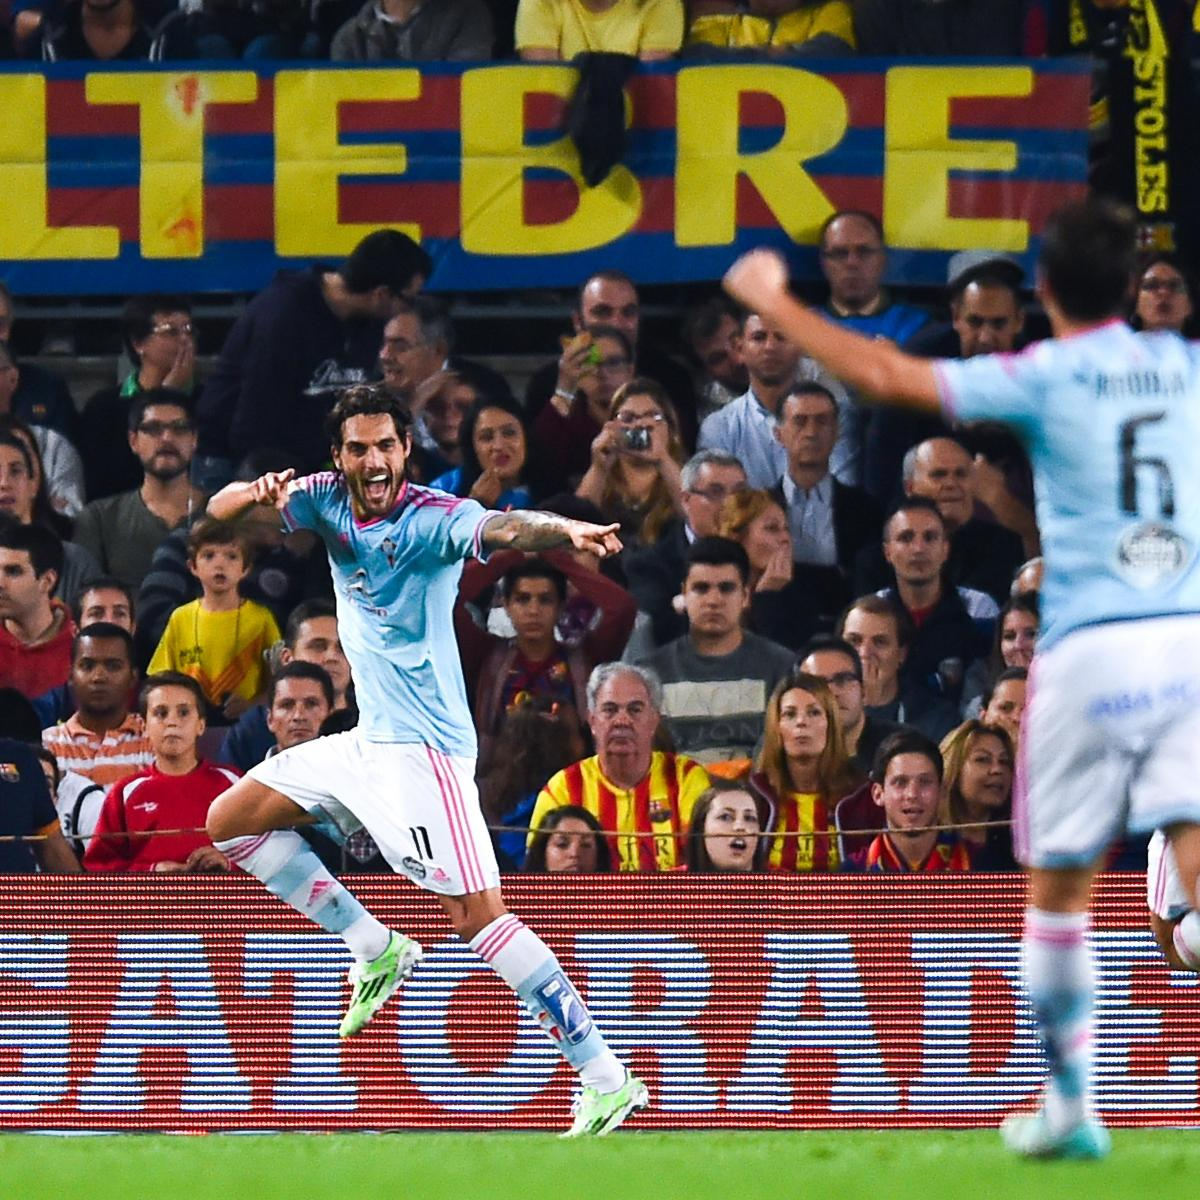 Celta Vigo Vs Barcelona Direct: Celta Vigo Vs. Barcelona: Team News, Predicted Line-Ups